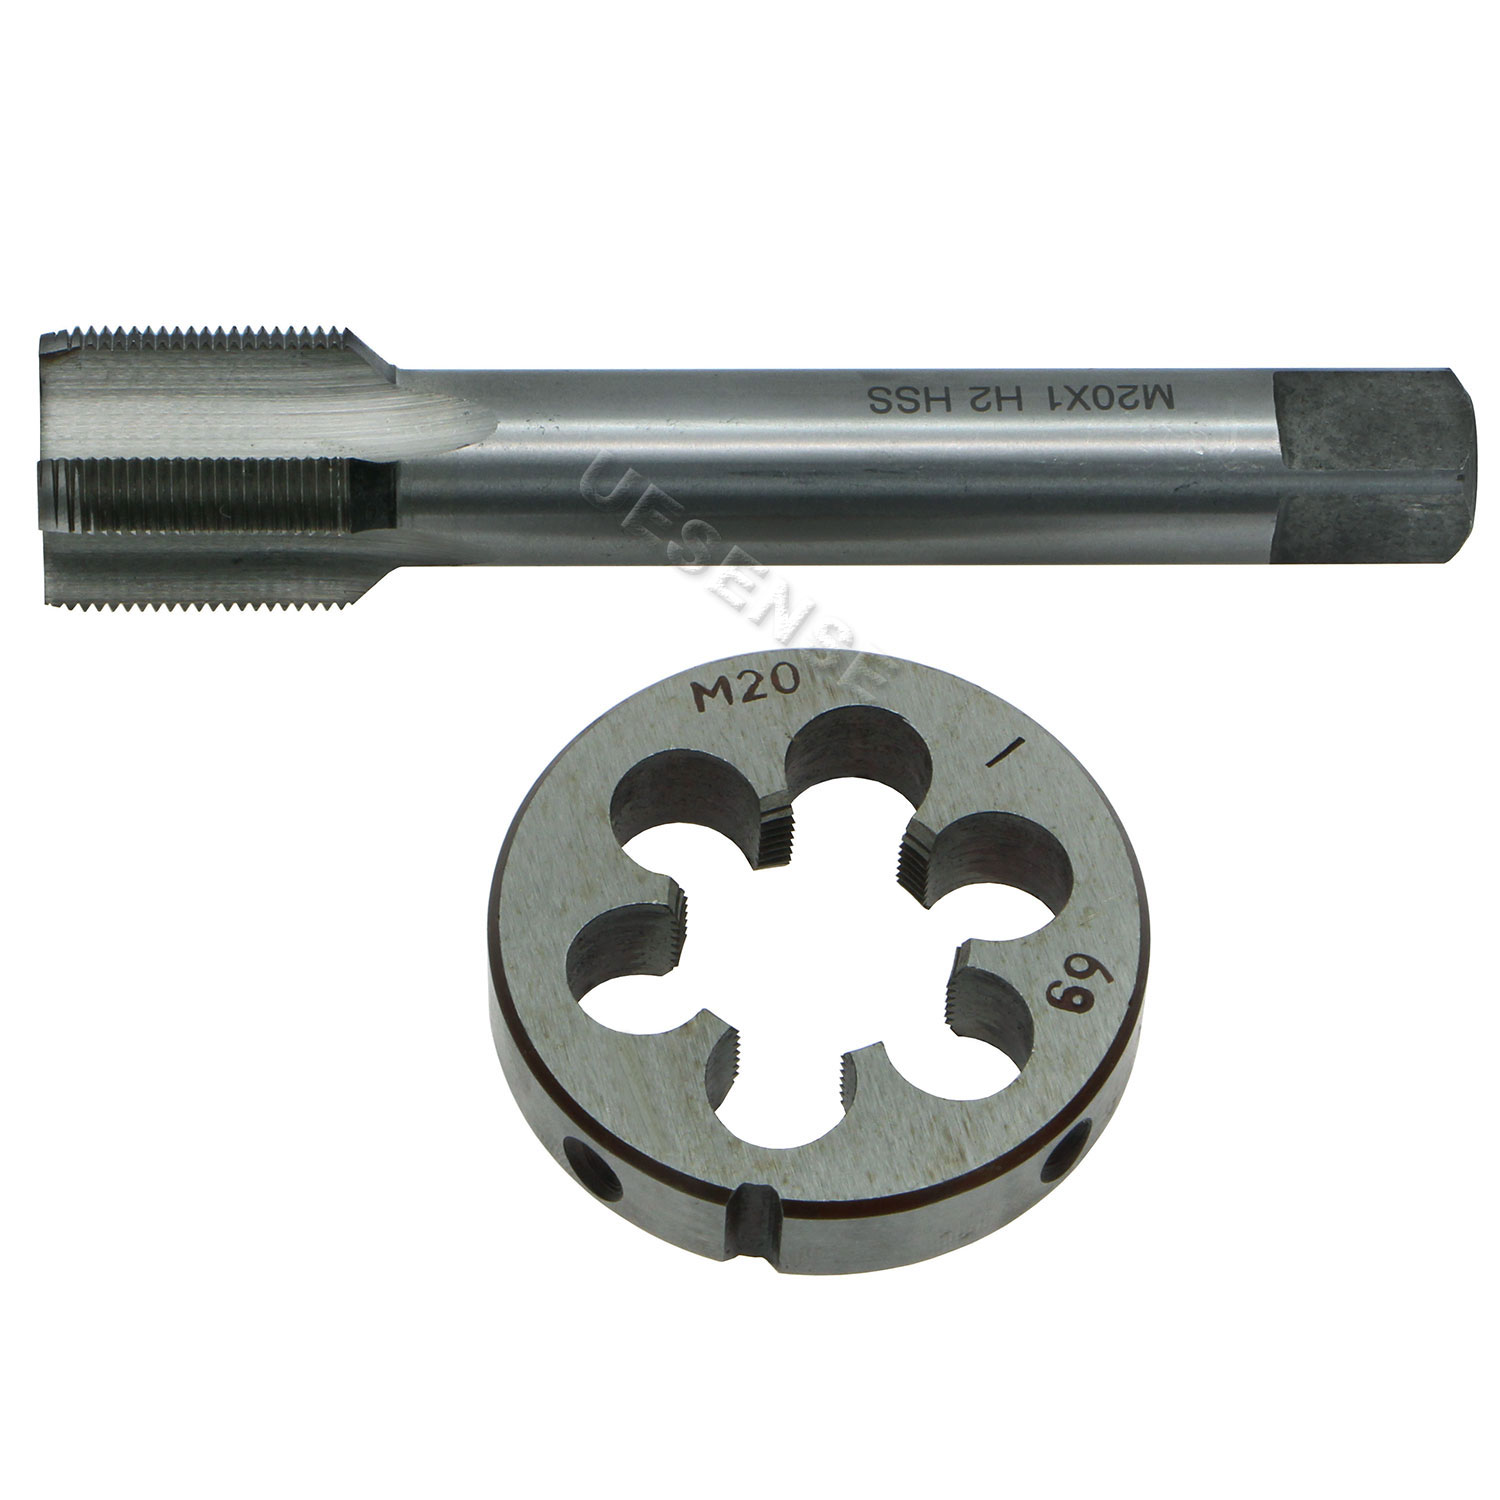 New 1pc Metric Right Hand Tap M20X2.0mm Taps Threading Tools M20 x 2 mm